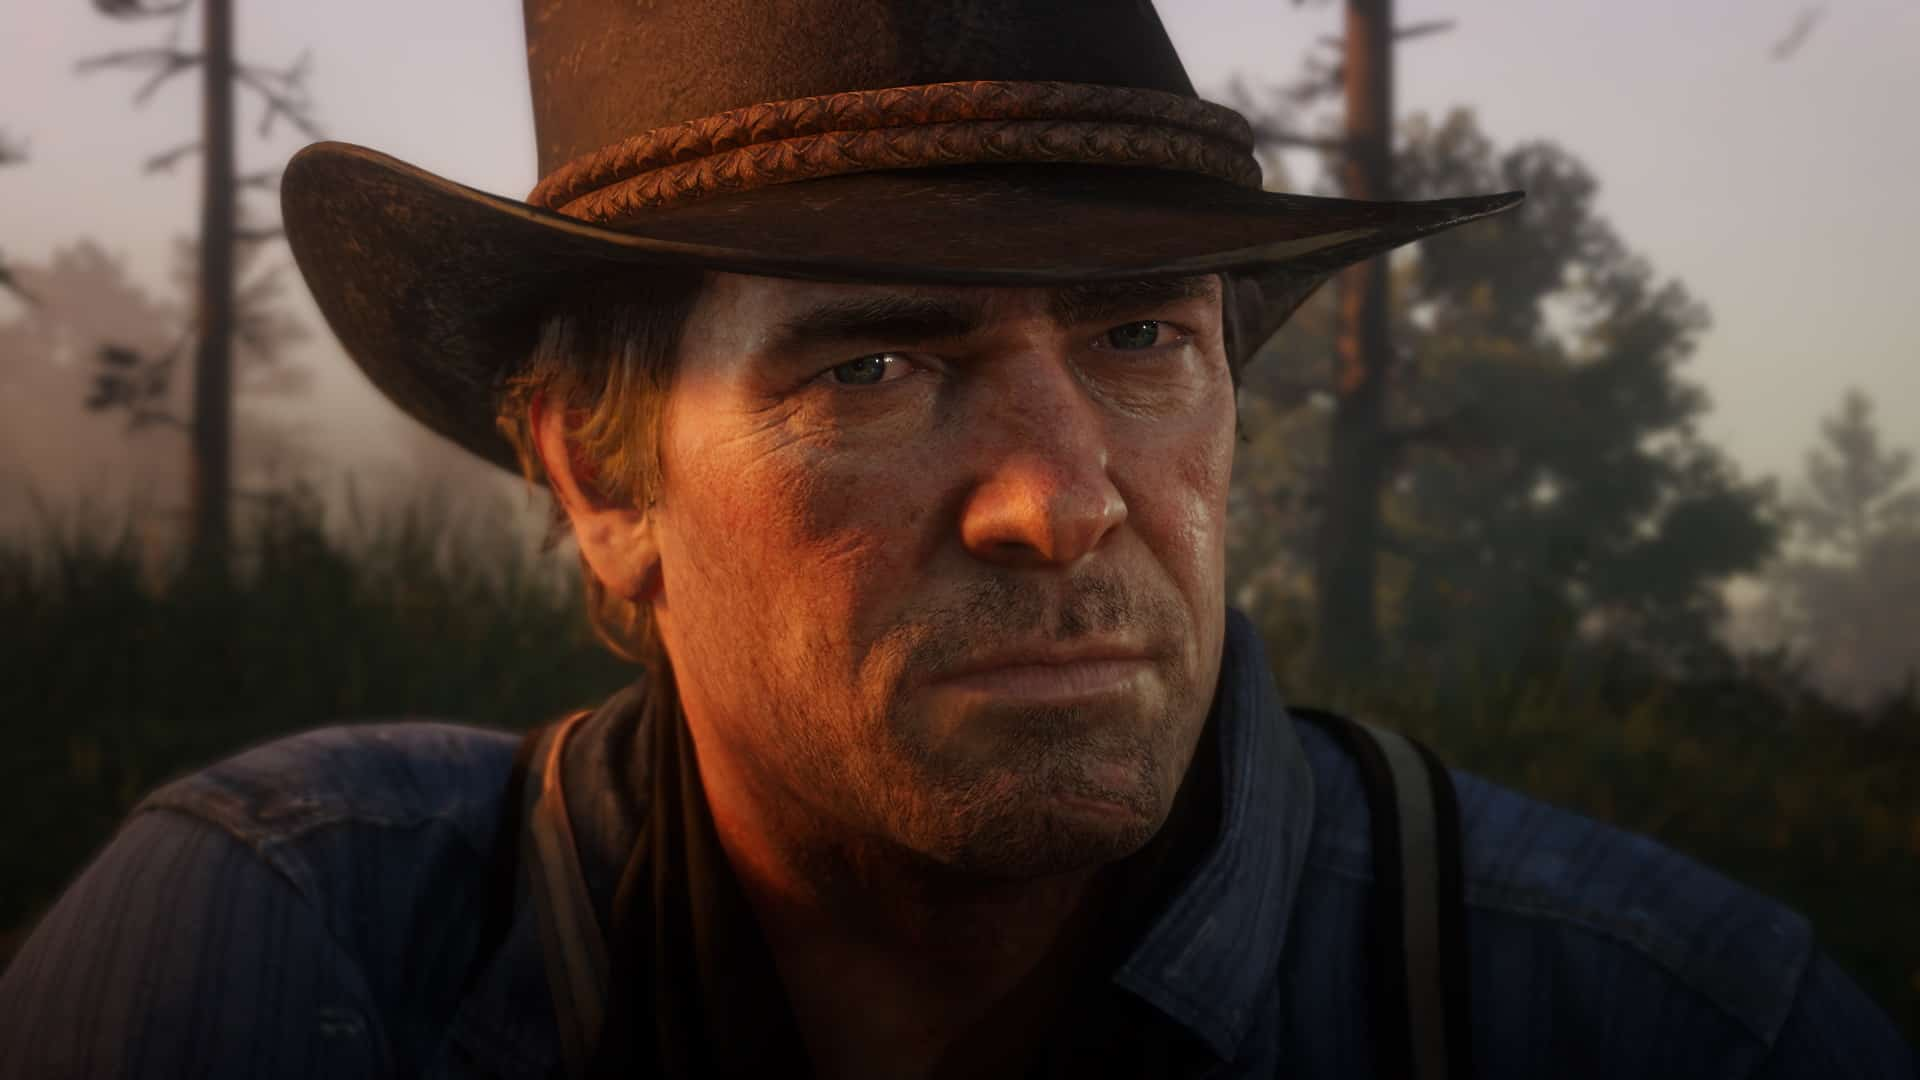 Avatar Awards Red Dead Redemption 2 Cheat Xbox 360, Xbox One